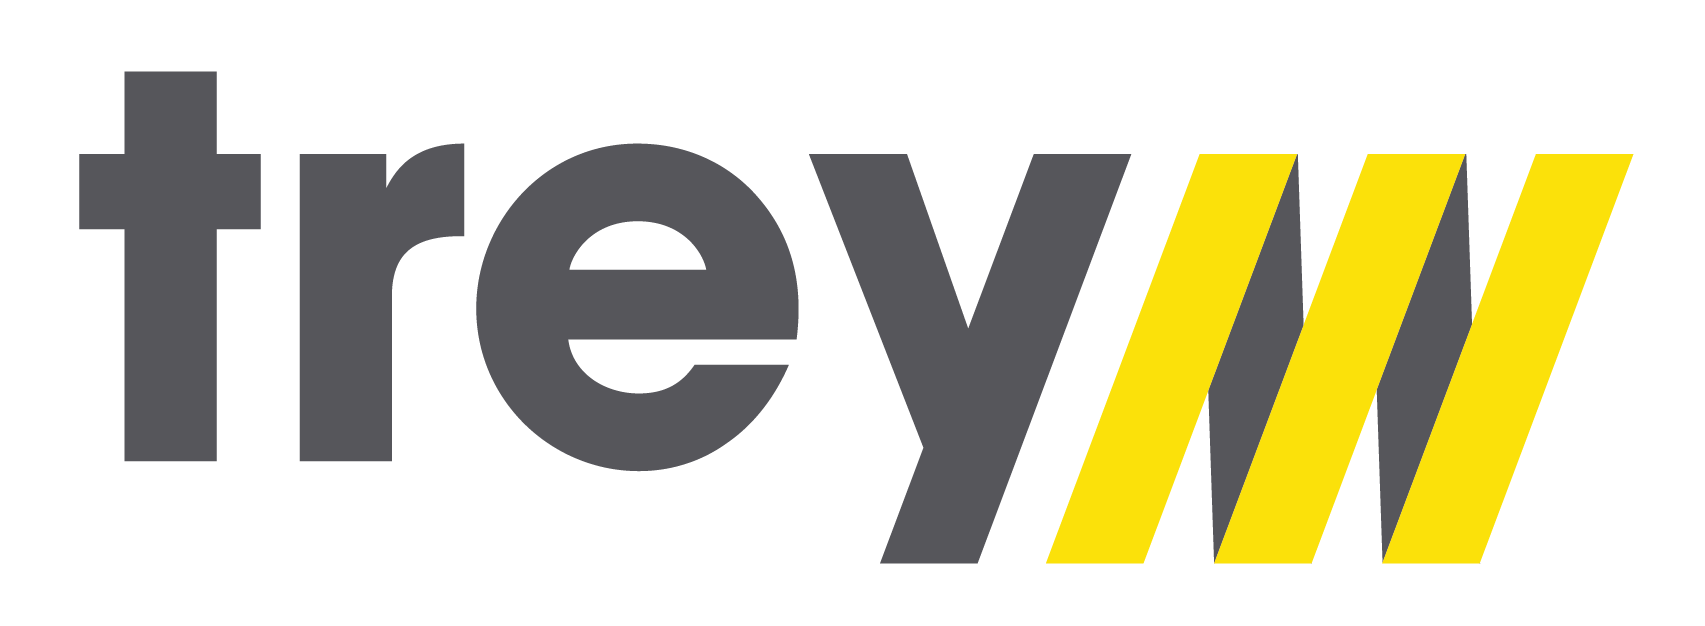 Trey_Logo_On_White-01.png